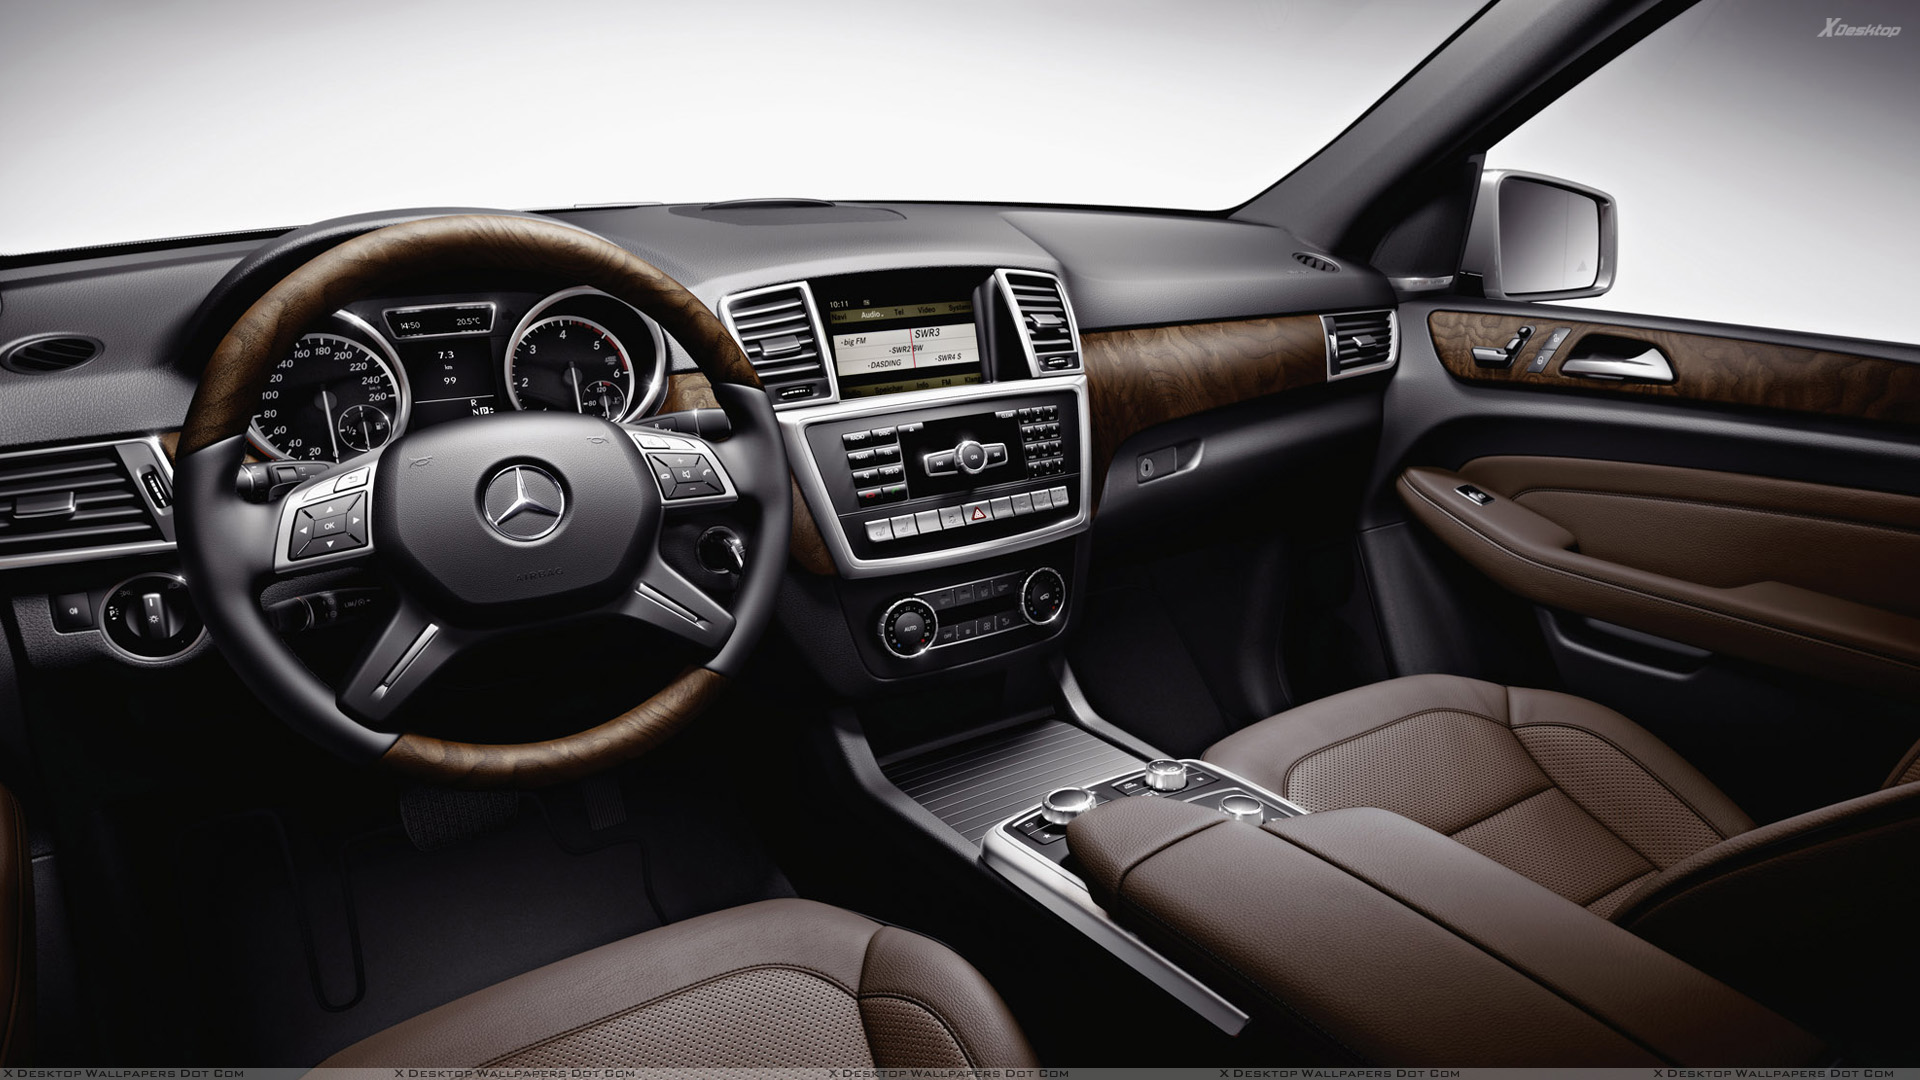 2012 mercedes benz m class accessories interior wallpaper